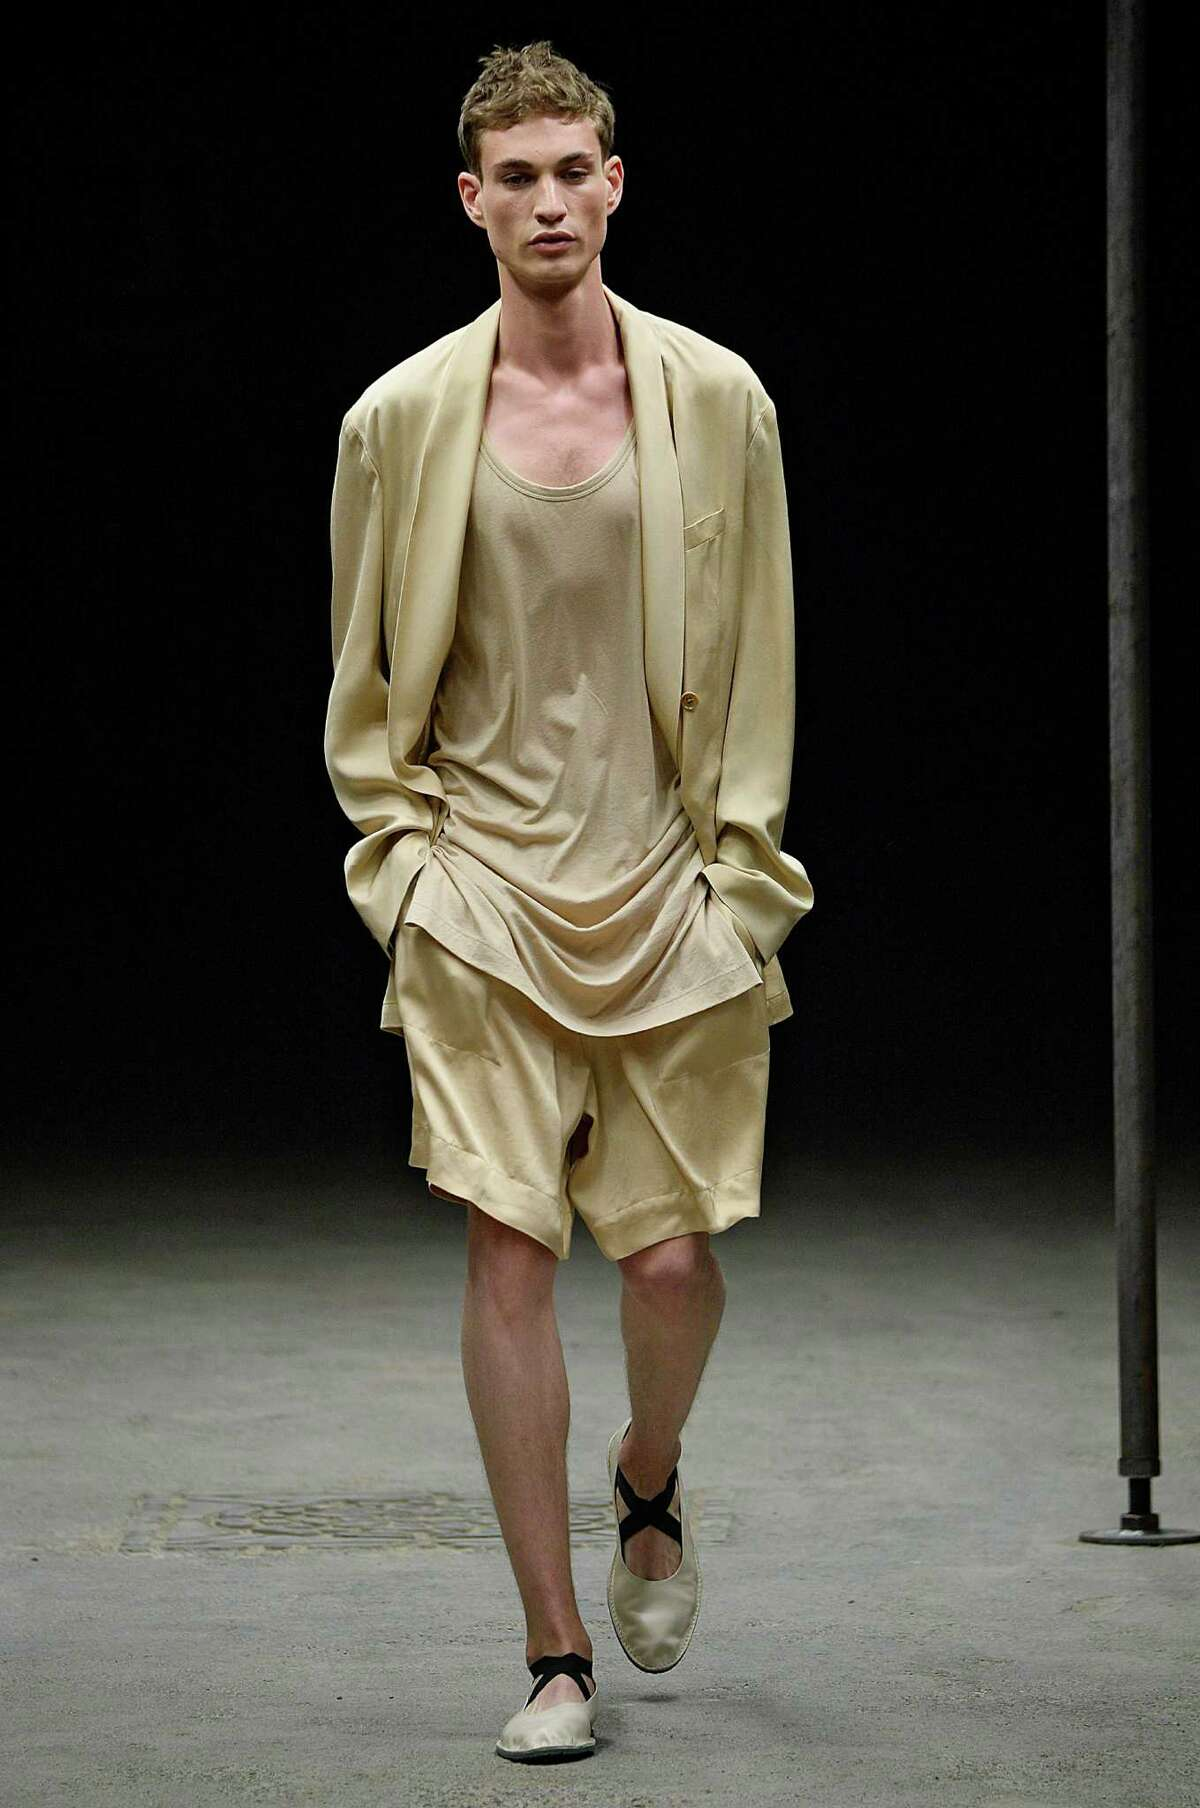 A neutral color palette is a key trend in menswear for spring 2015. Here's how to wear it as seen in this runway look from Dries Van Noten's Spring/Summer 2015 collection.